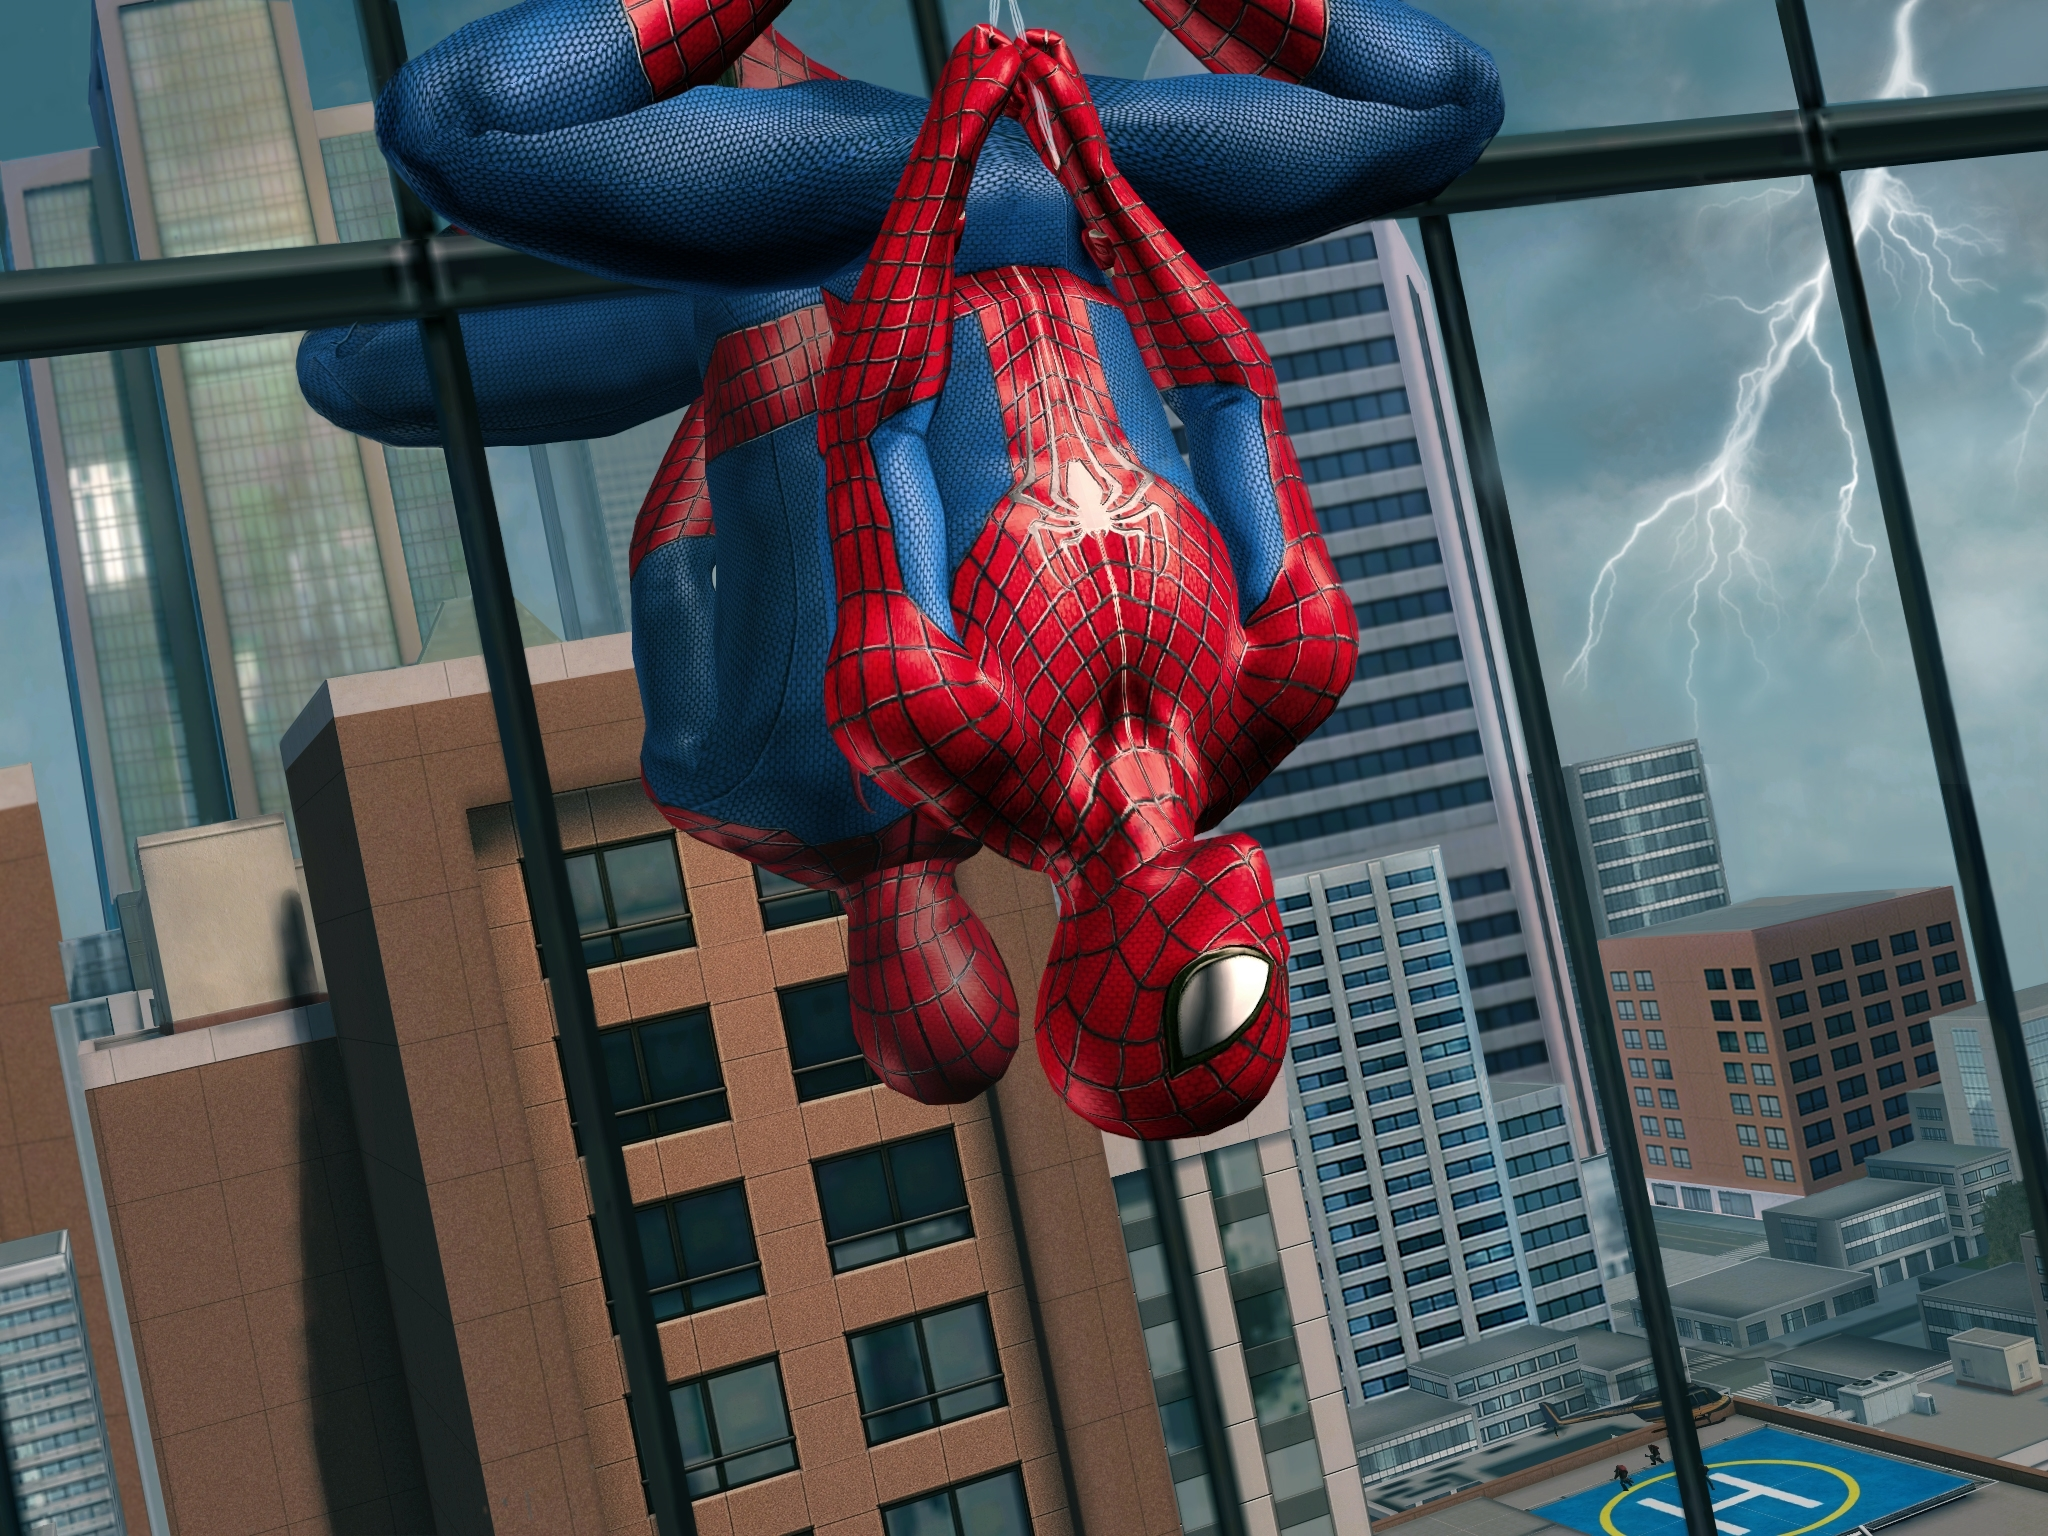 Spiderman games hd wallpaper free download - Spider hd images download ...